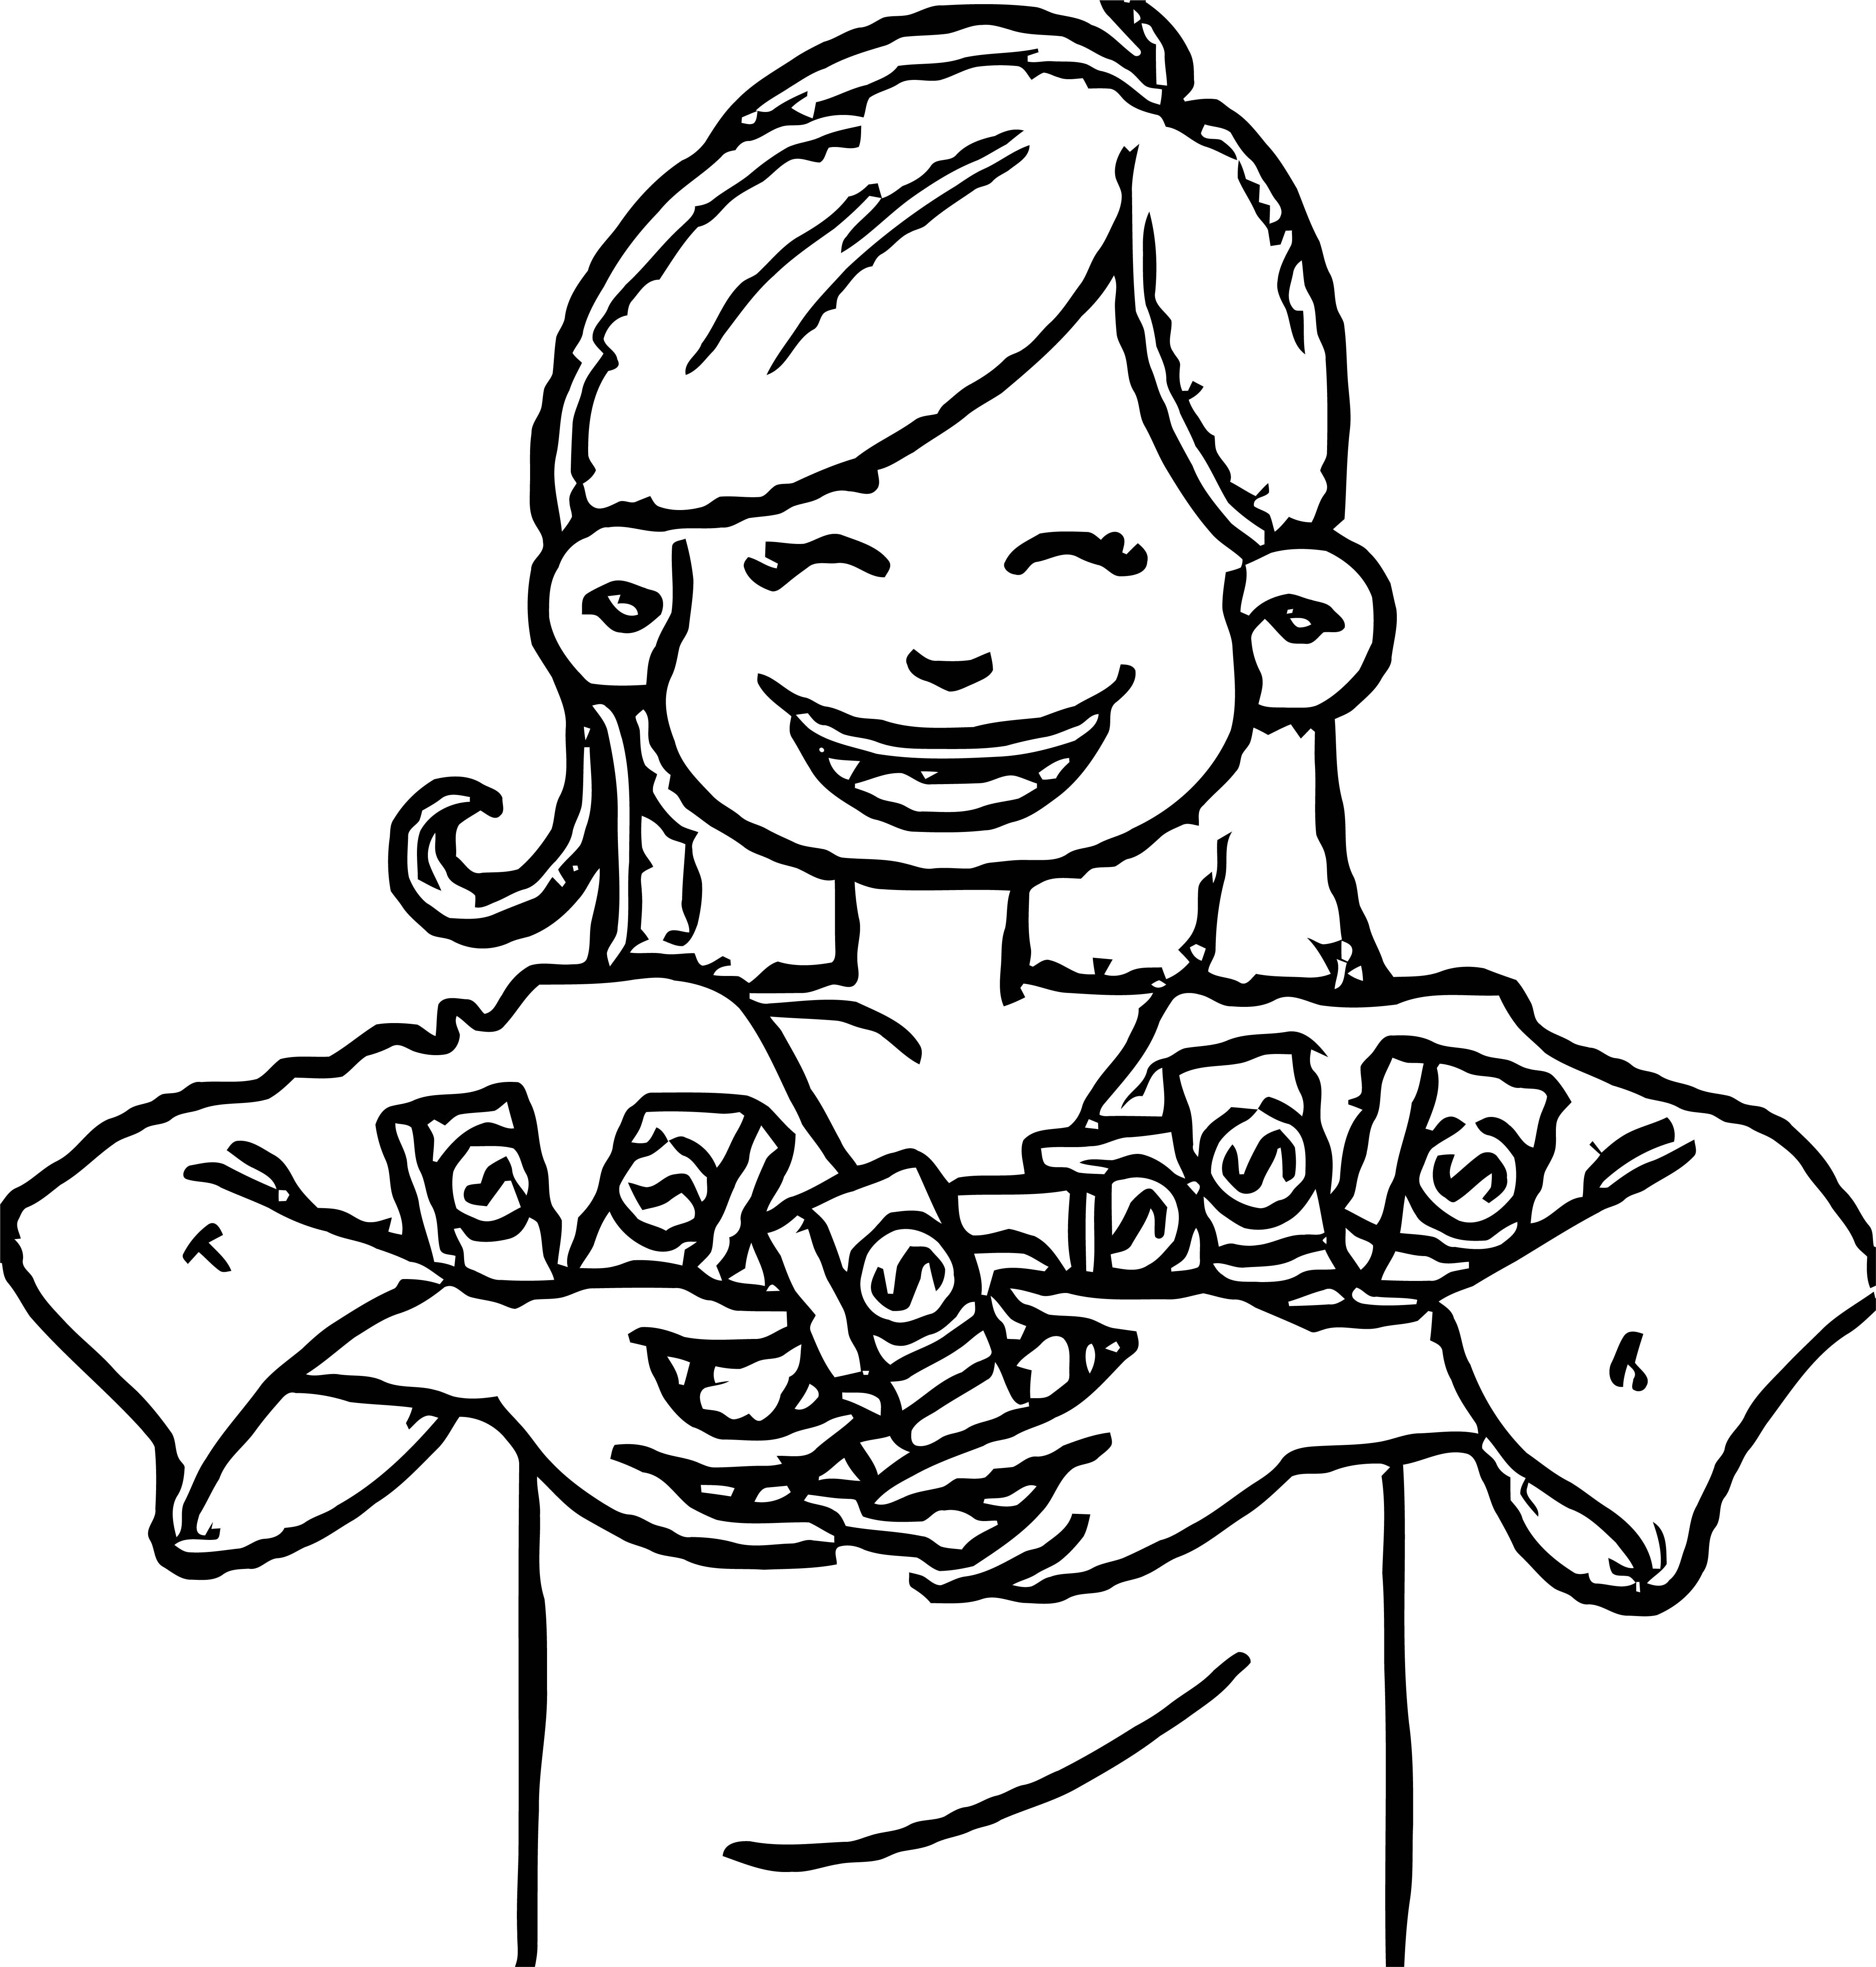 Tom Gold Run Coloring Pages